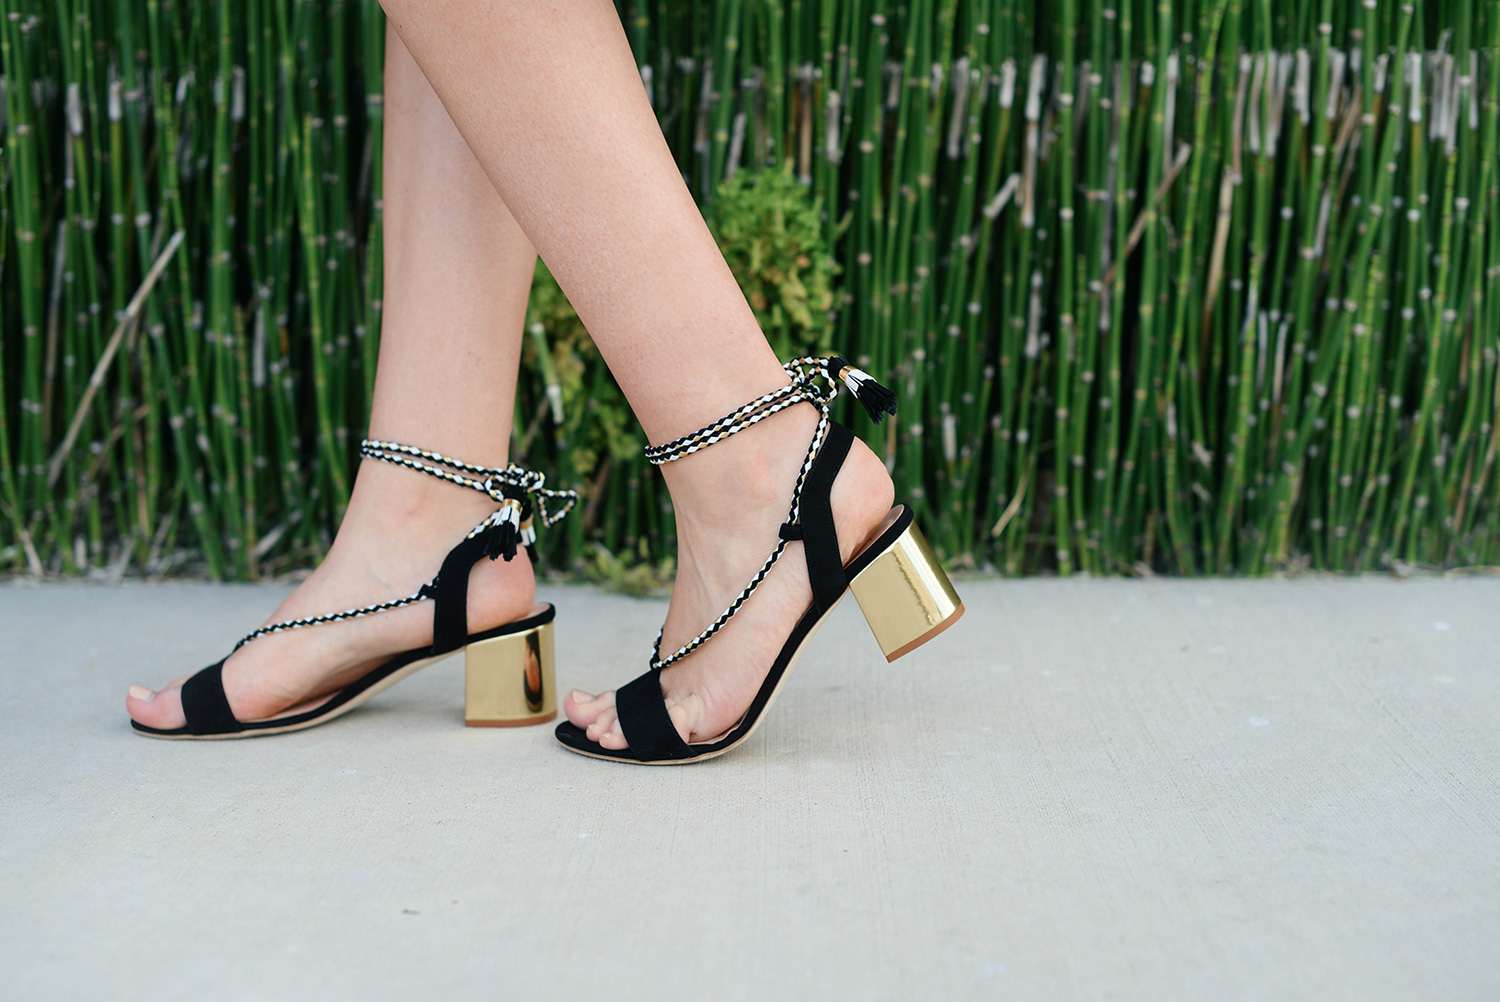 Kate Spade New York Manor Heels | The Style Scribe